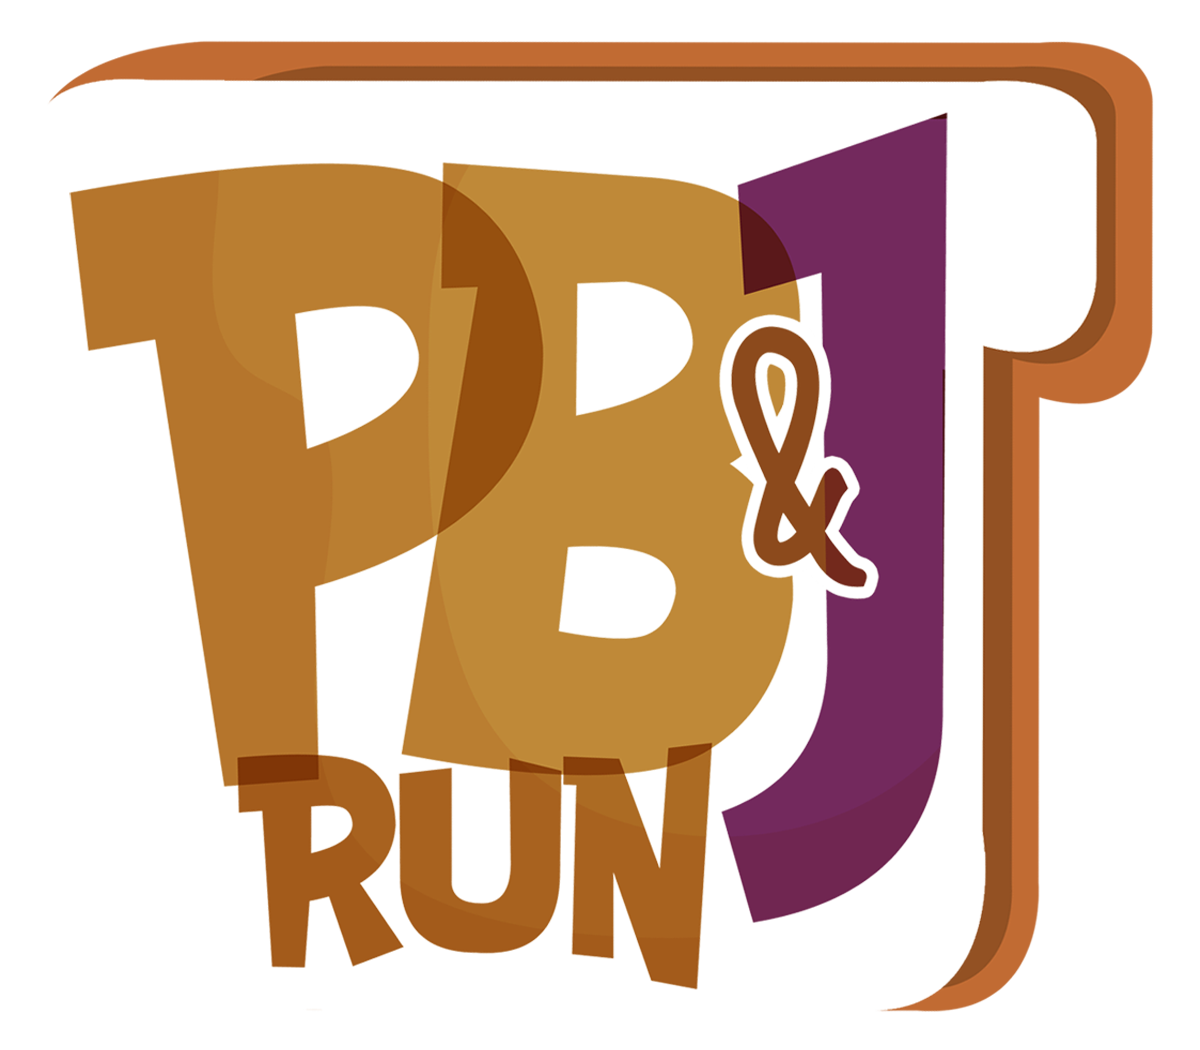 Pb j k clearwater. Couch clipart couch to 5k